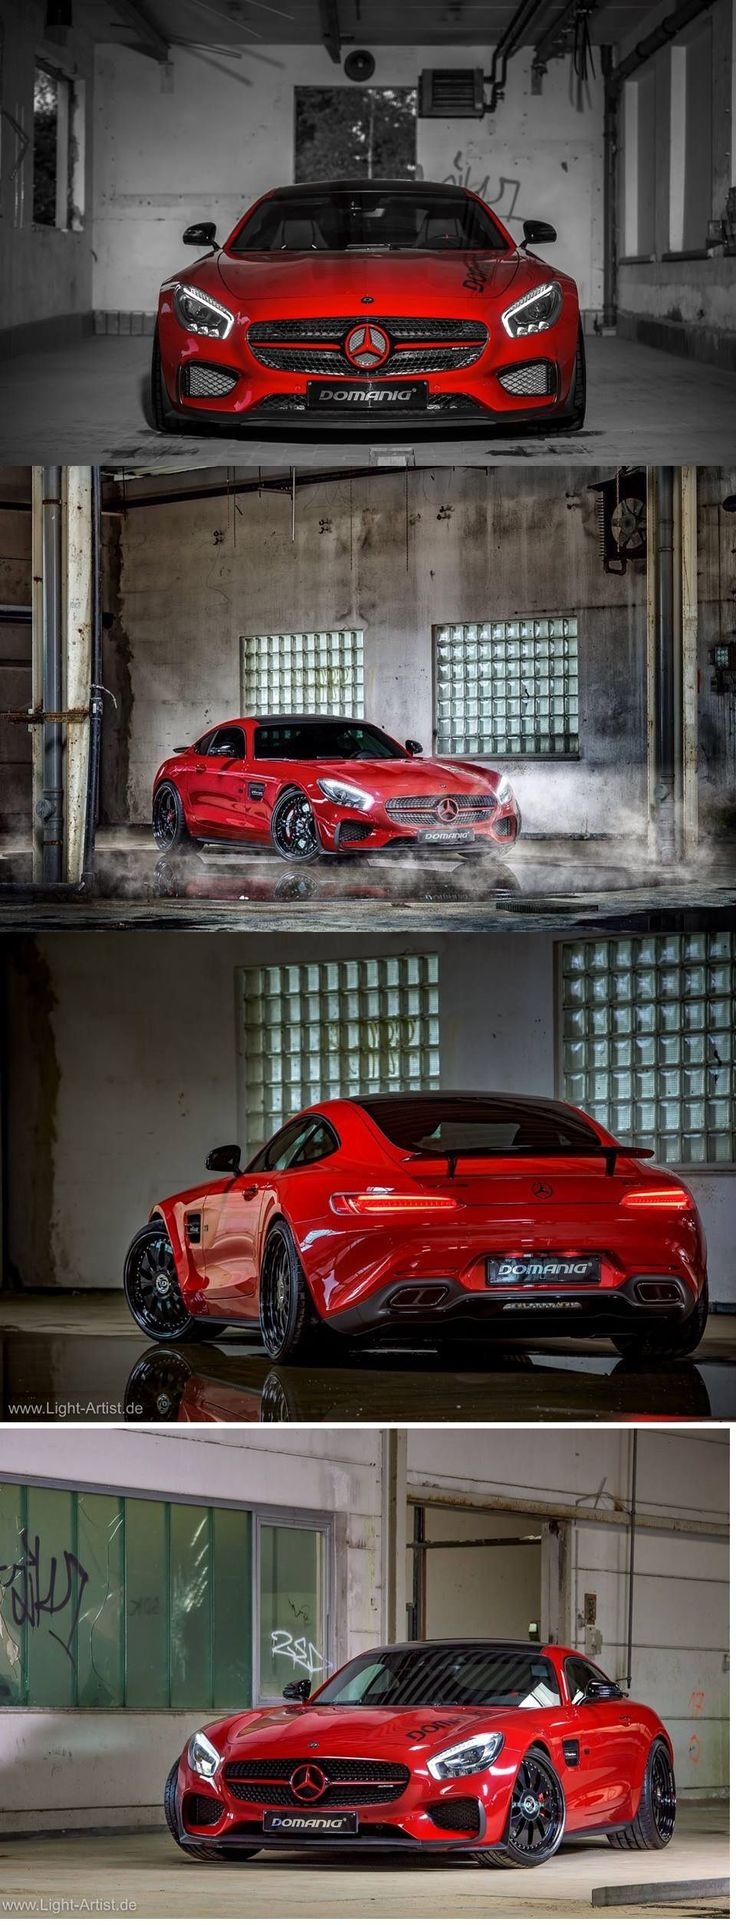 Mercedes AMG GT S by Domanig TuningCult.com Support For All Tuning Lovers. Come visit us and get all the latest Car news